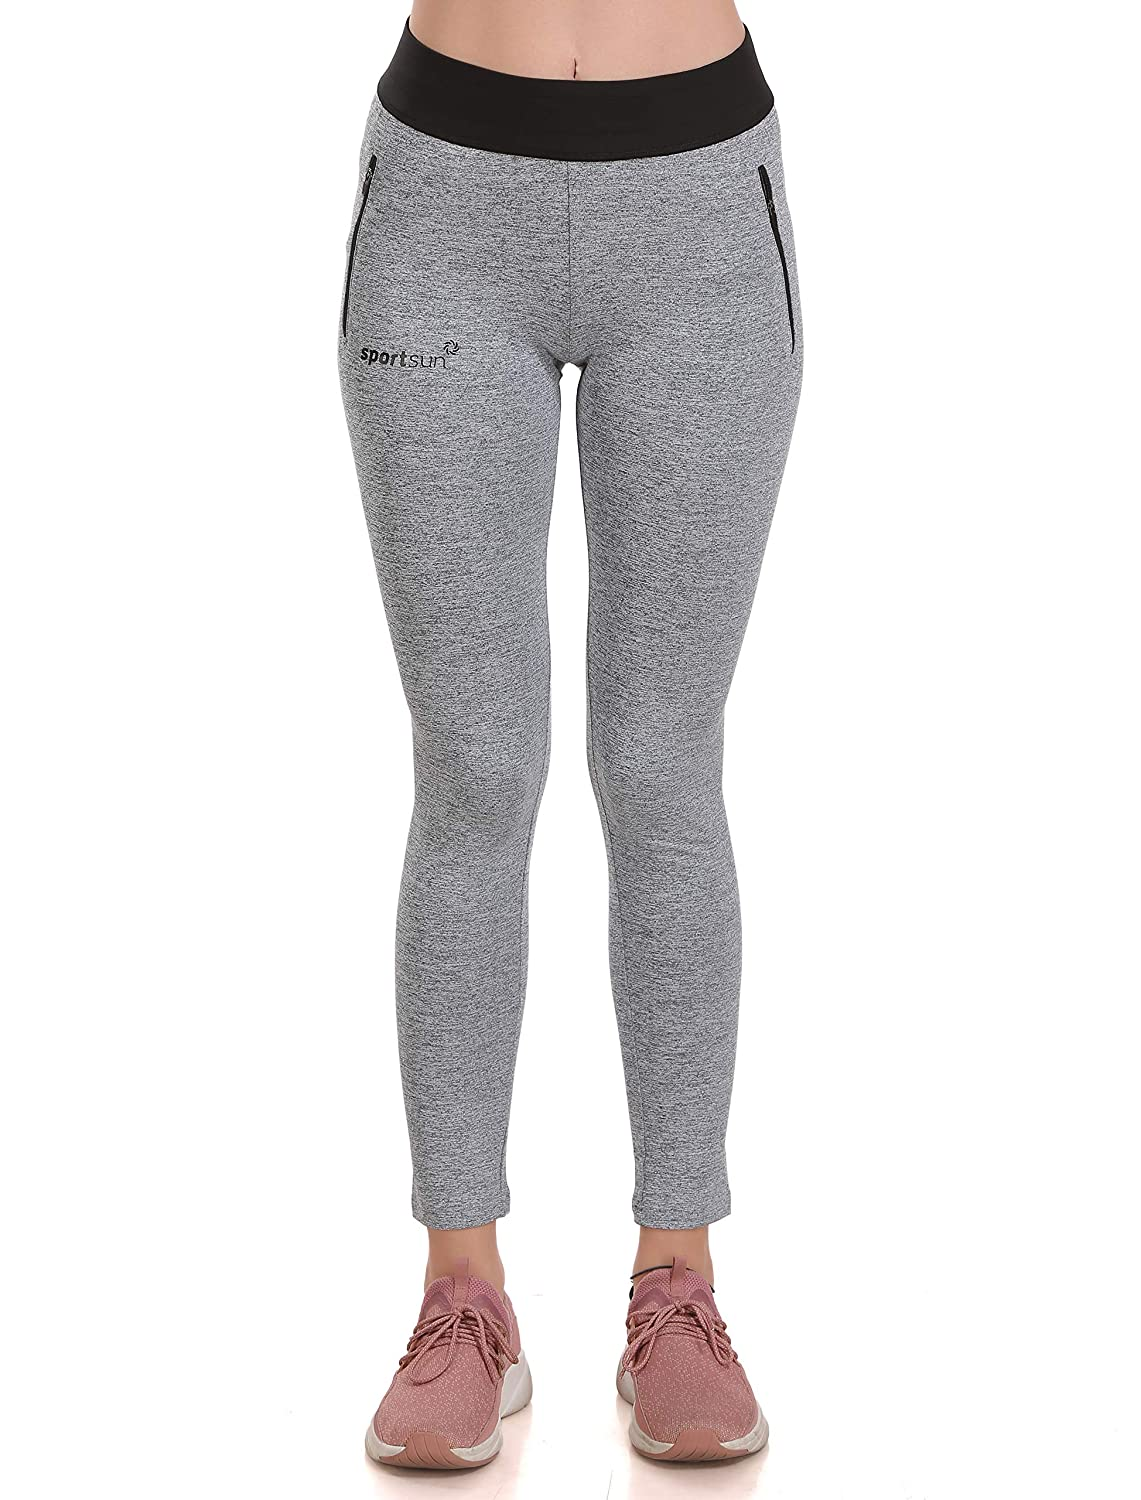 Buy Sport Sun Tight Fit Women Leggings For Yoga Gym And Sports At Amazon In Fits true to size, take your normal sizepattern type: sport sun tight fit women leggings for